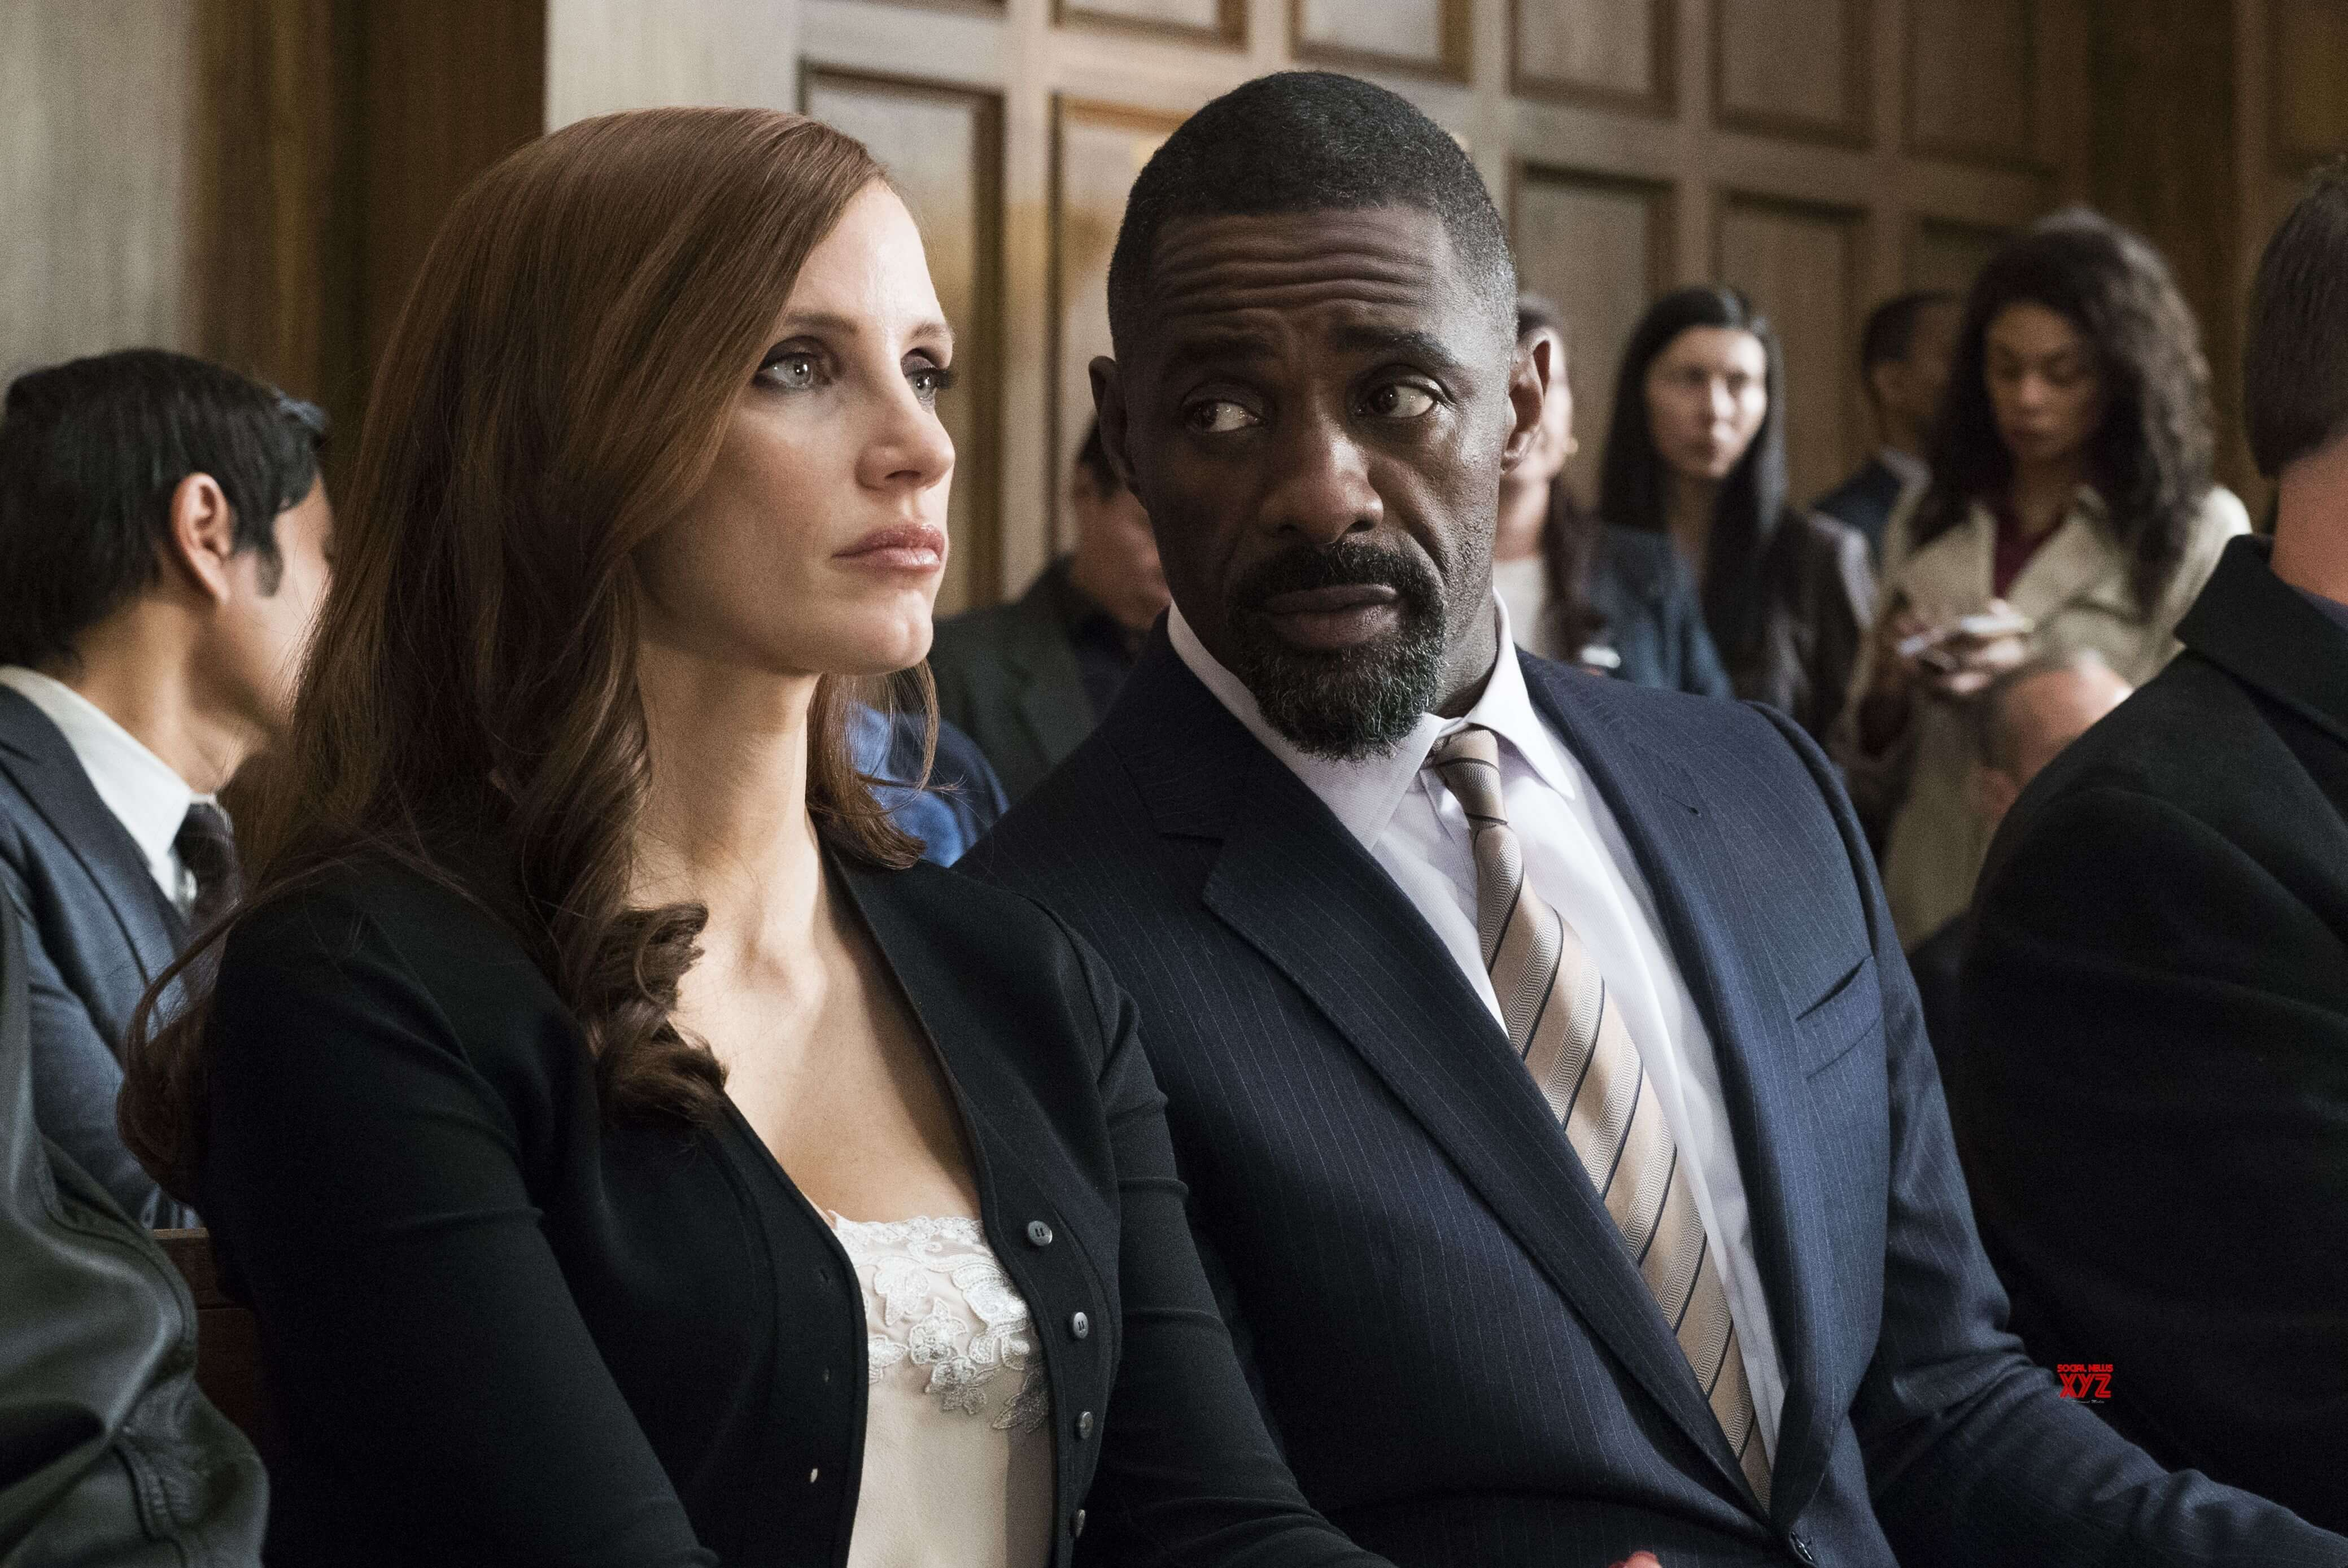 'Molly's Game' Review - Aaron Sorkin's Directorial Debut Offers Familiarity